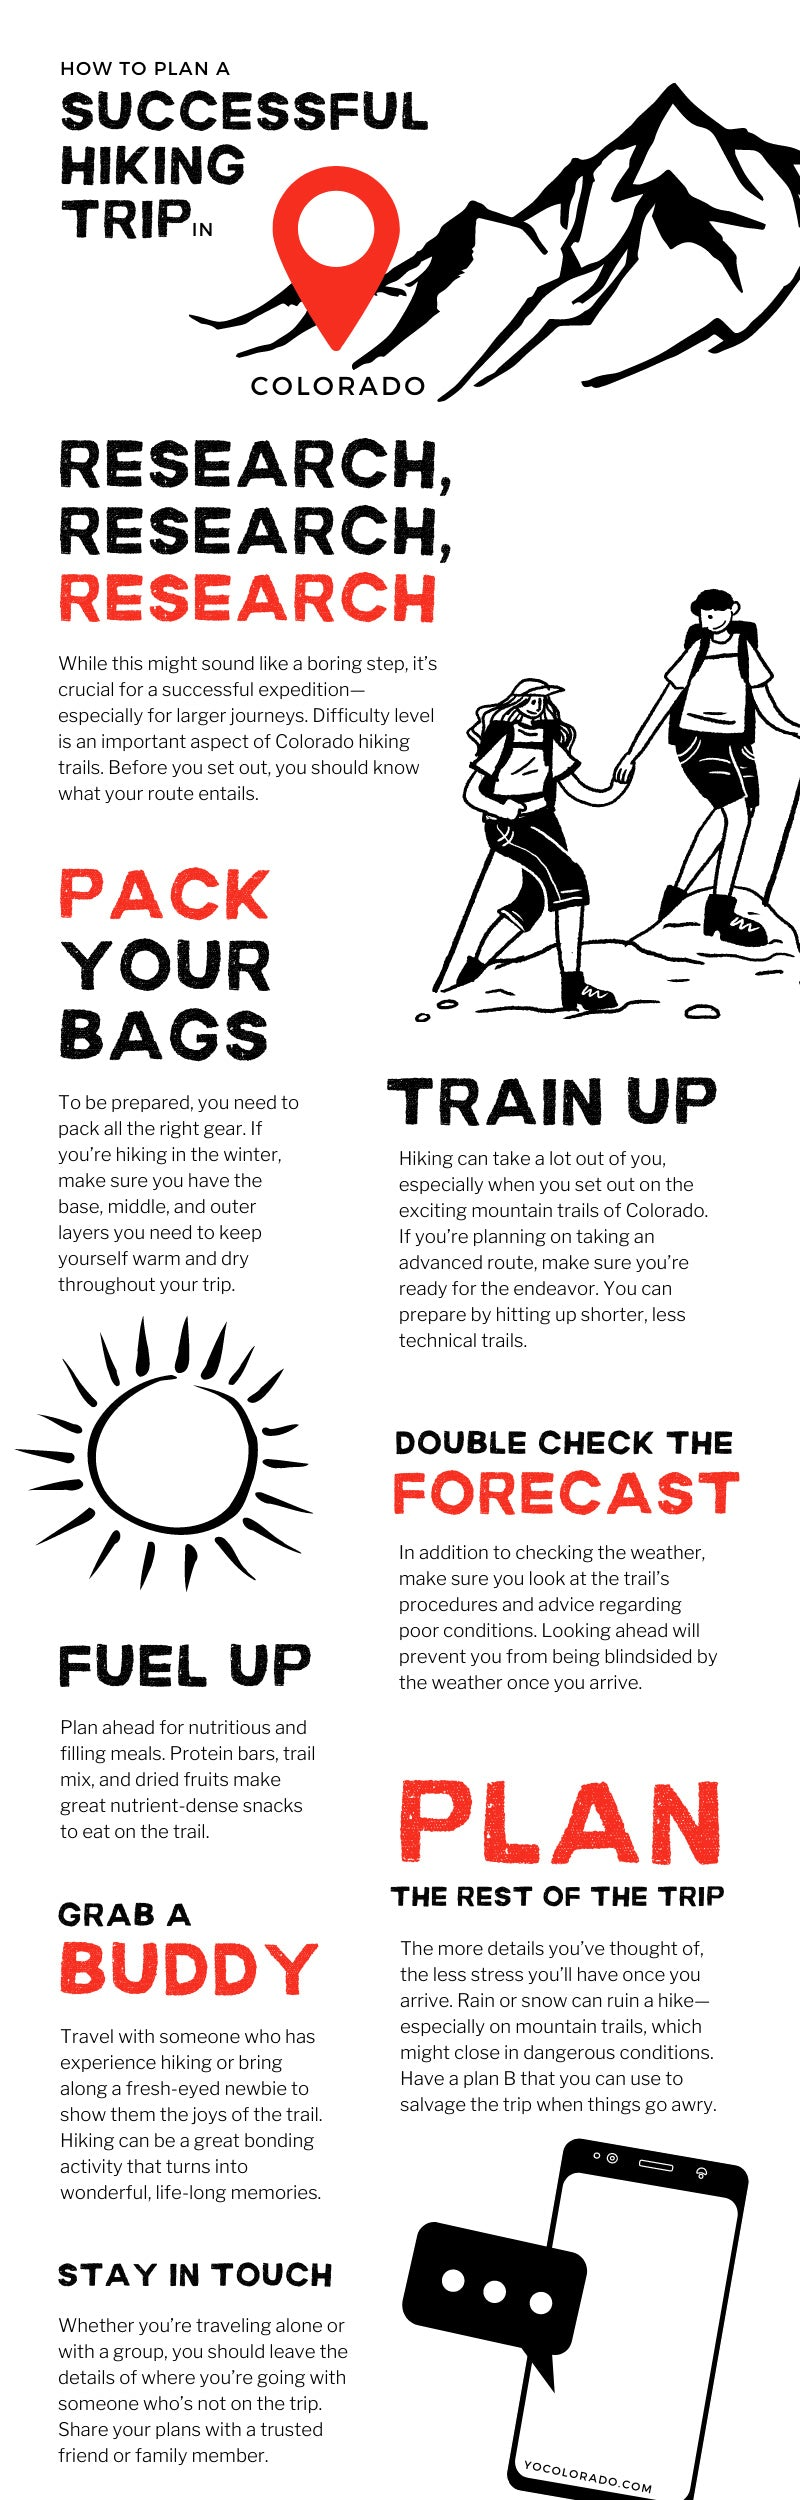 How To Plan a Successful Hiking Trip in Colorado